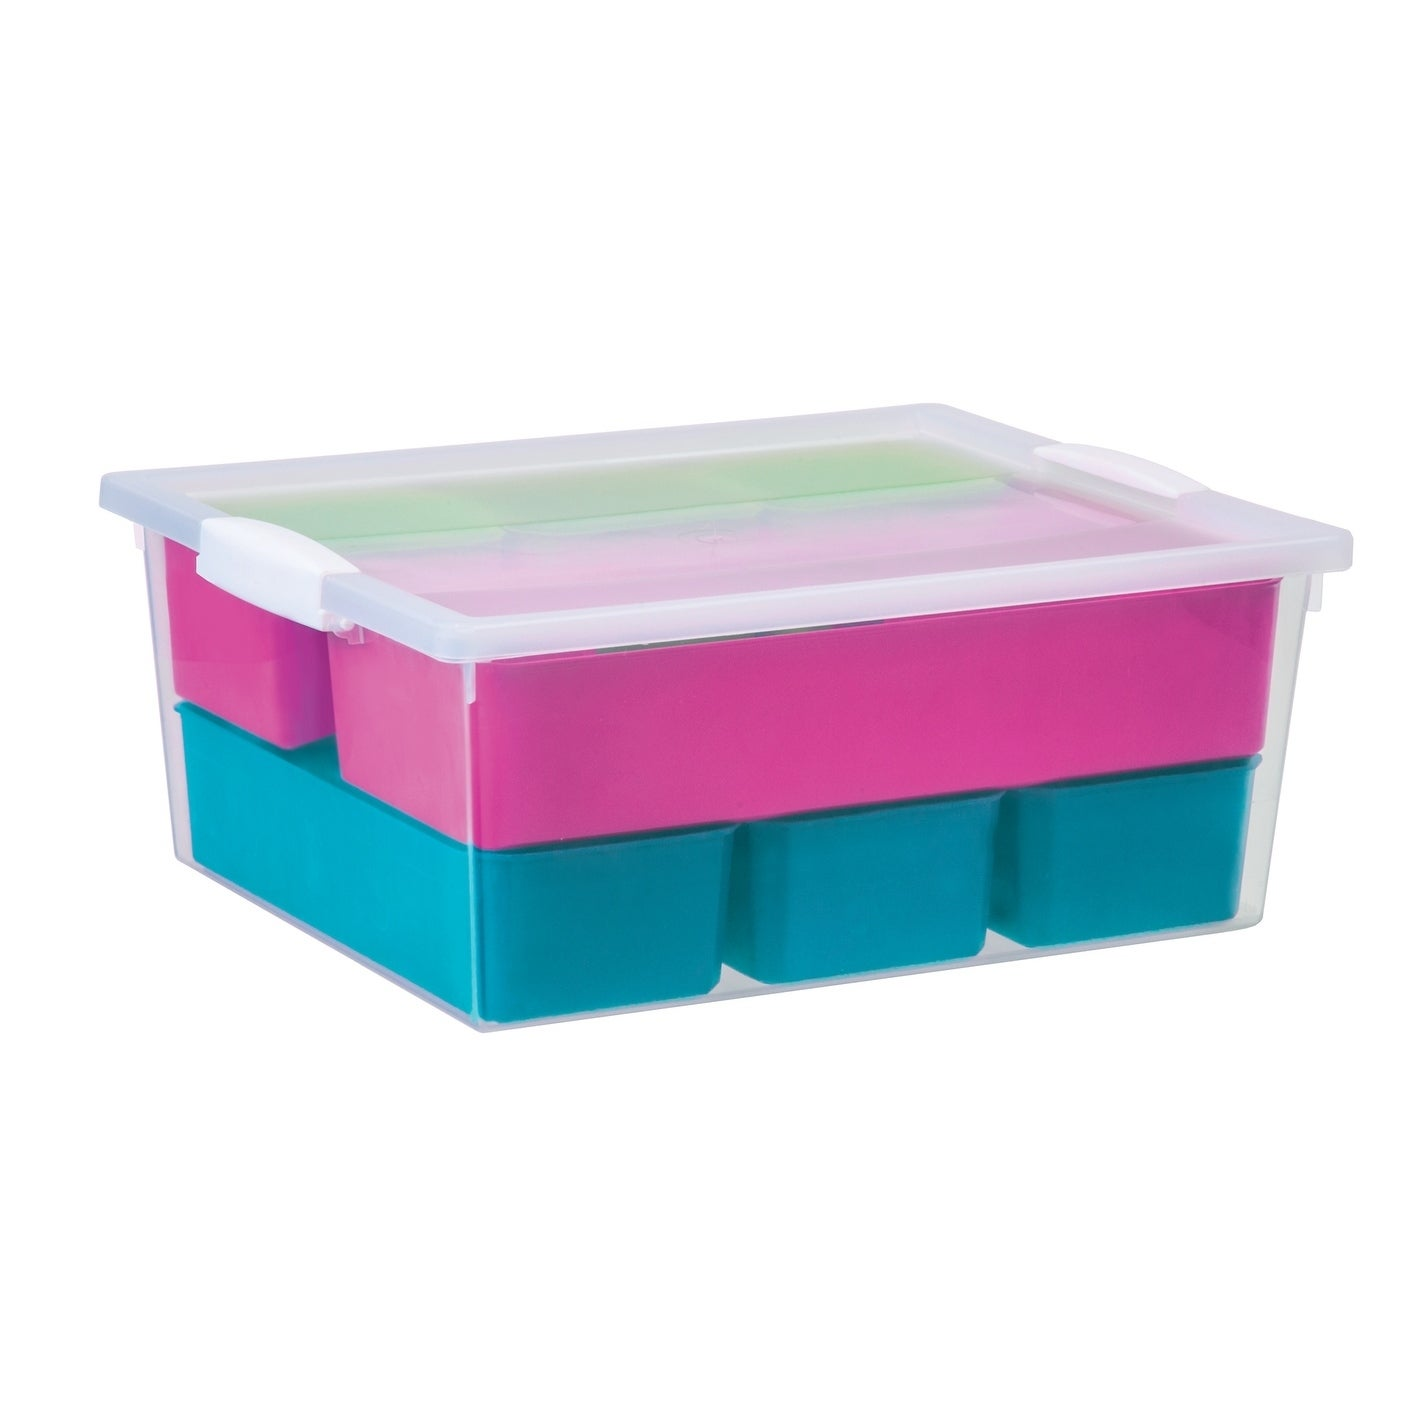 Shop Store And More 5 Container Set Free Shipping On Orders Over 45 Overstock 21175418